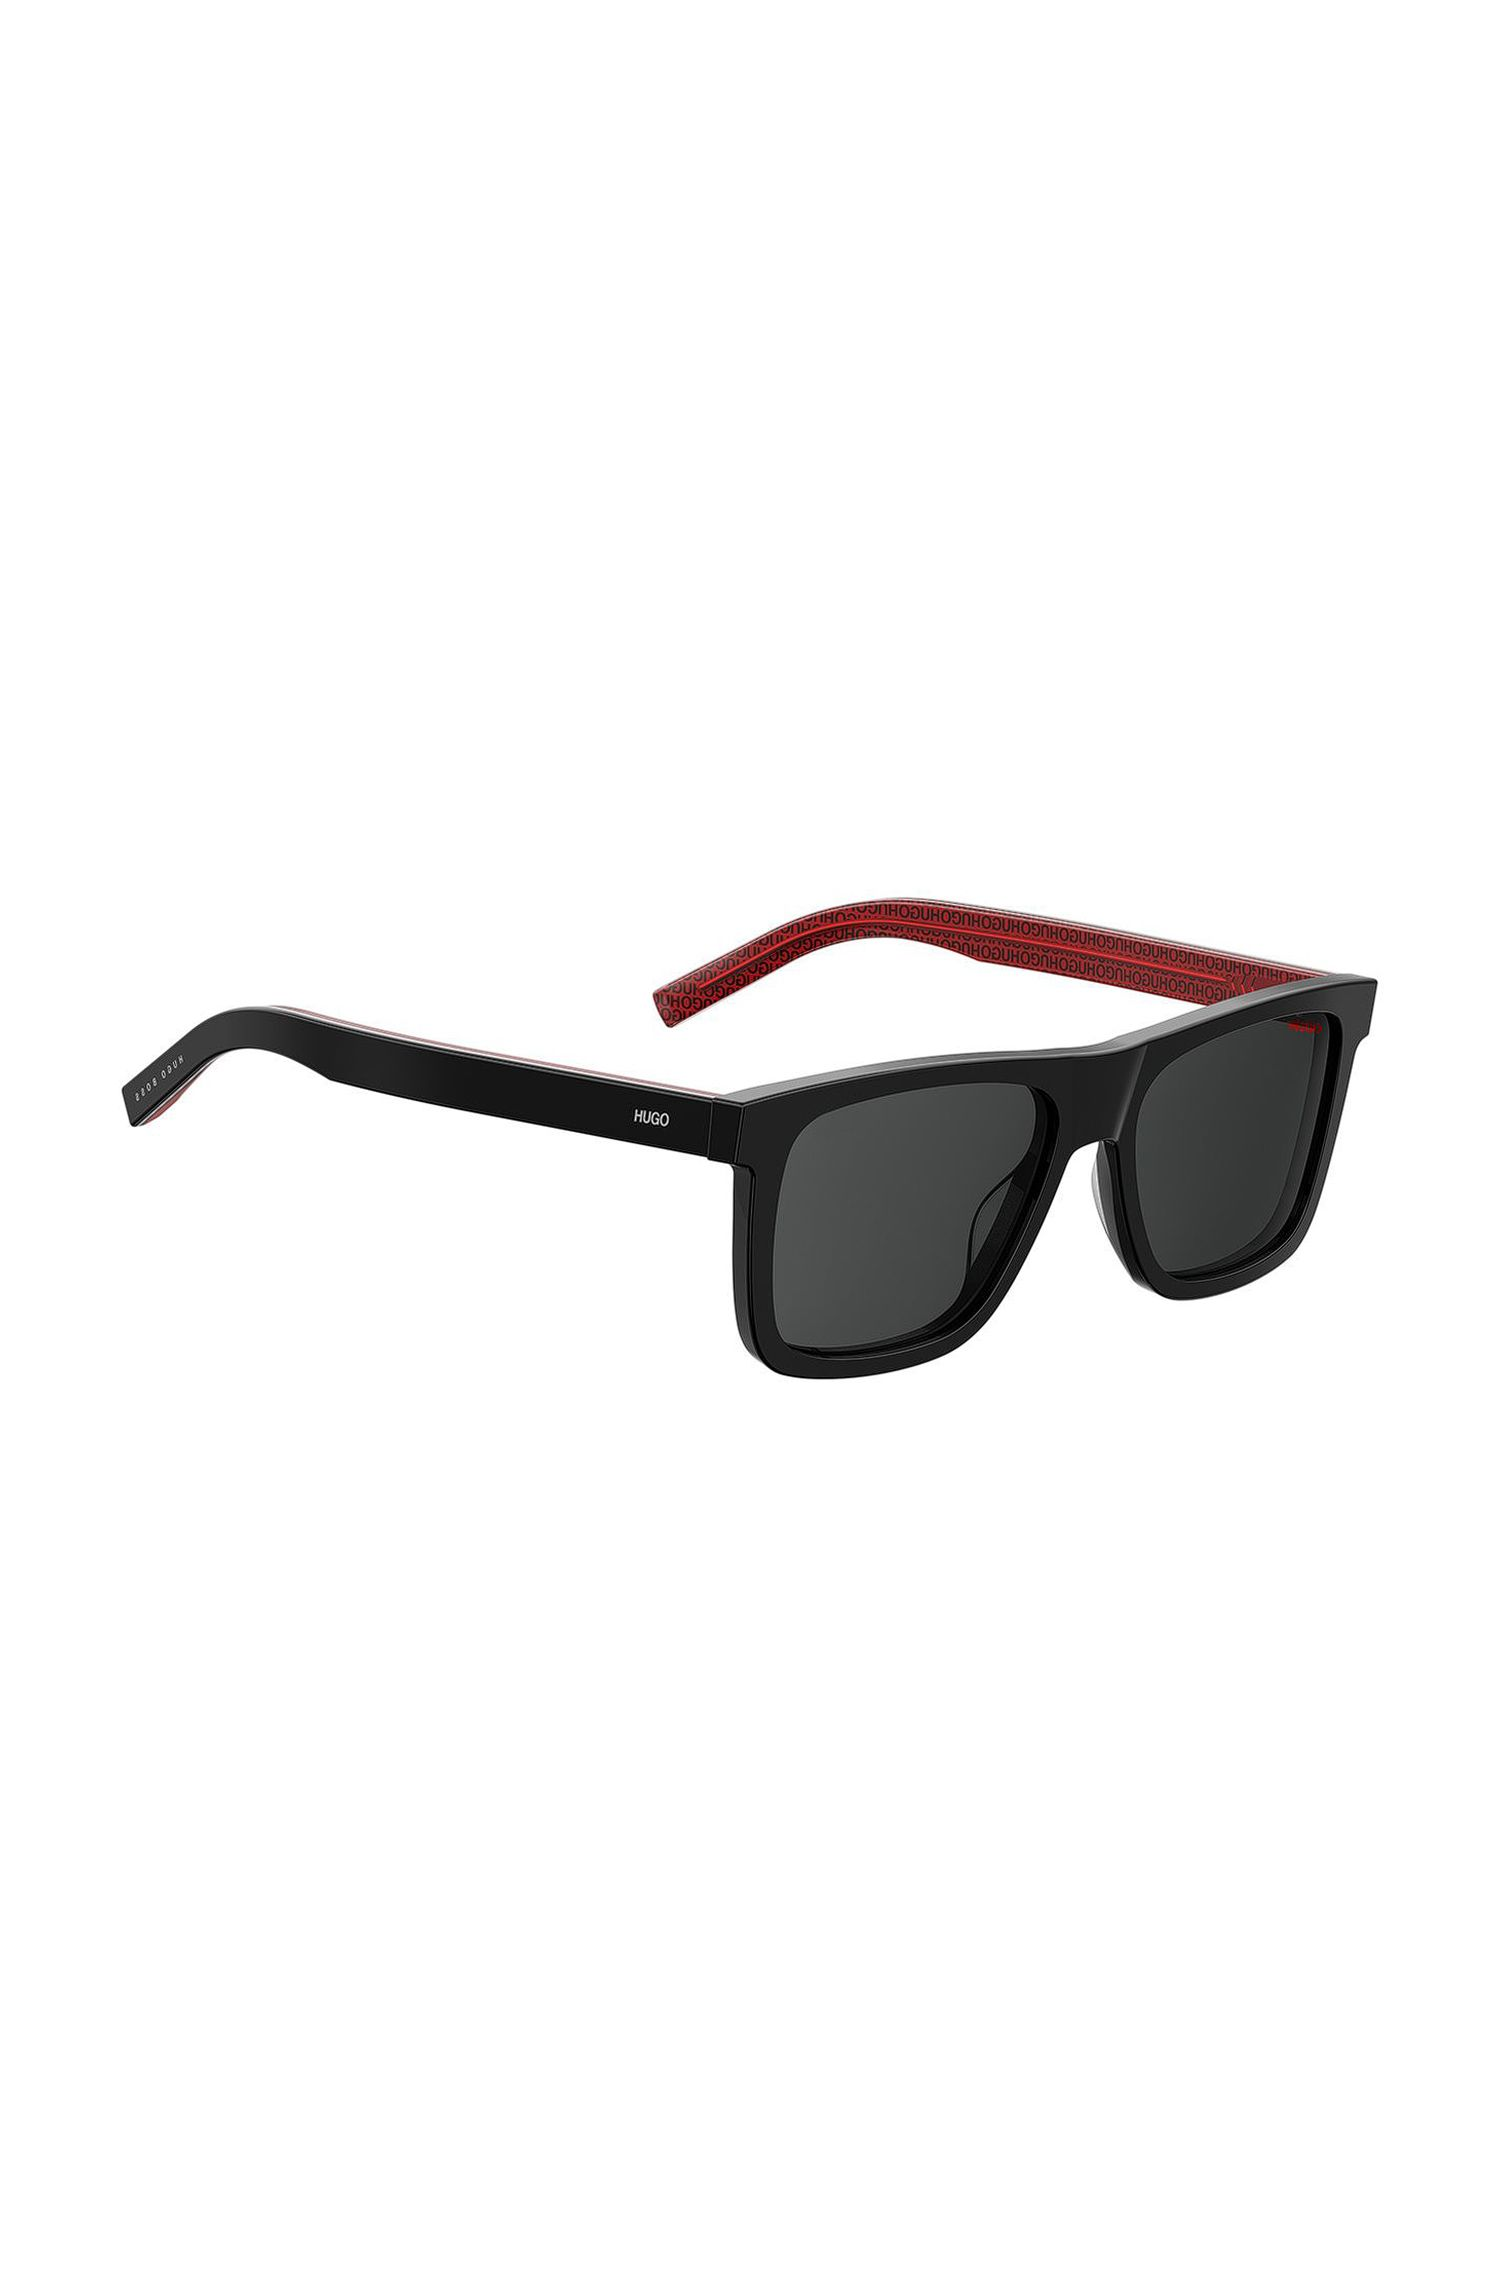 Full black acetate sunglasses with logo-patterned inner temples, Assorted-Pre-Pack